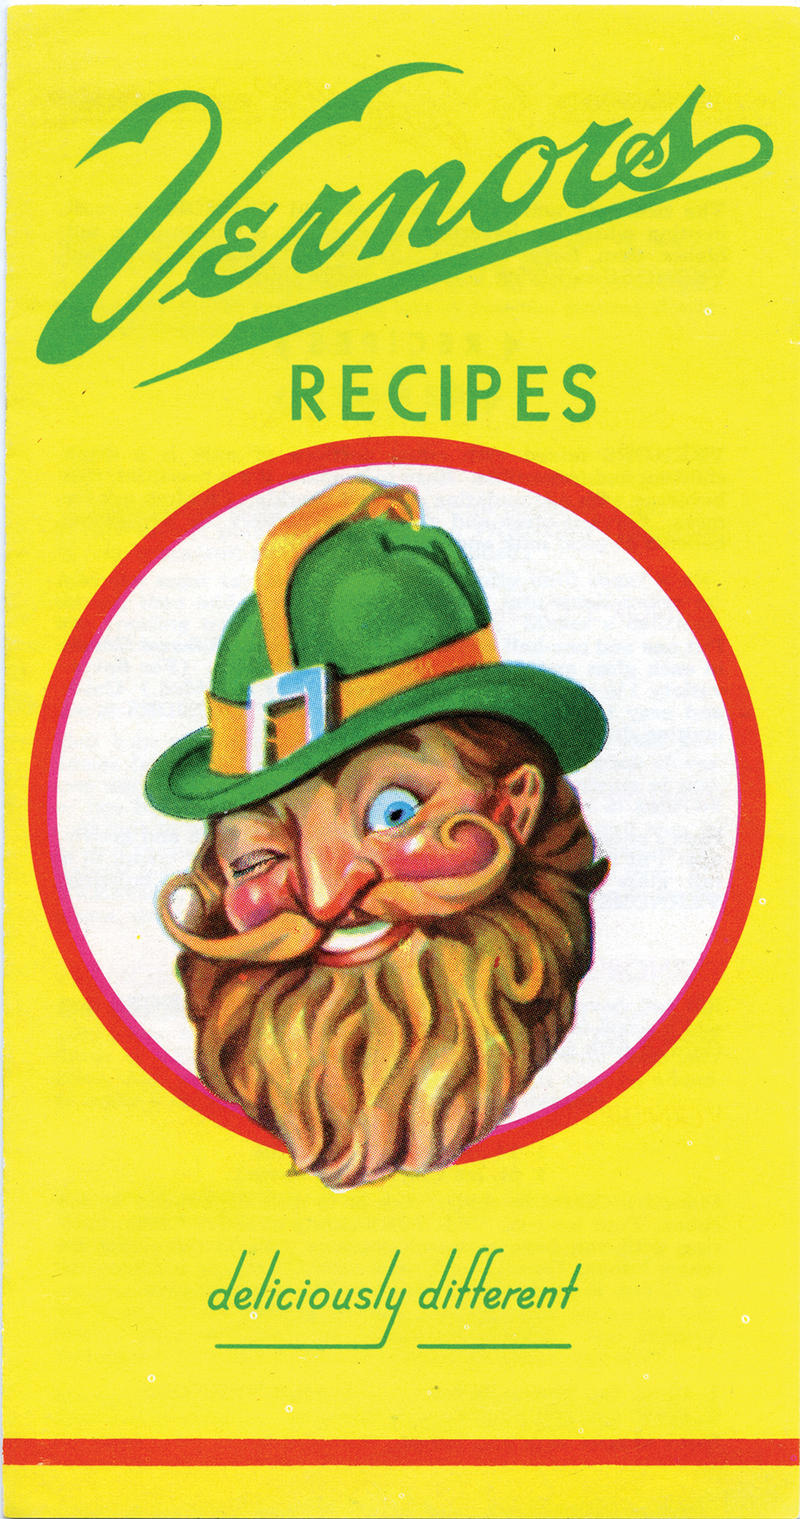 From a Vernors recipe booklet from the 1950s.